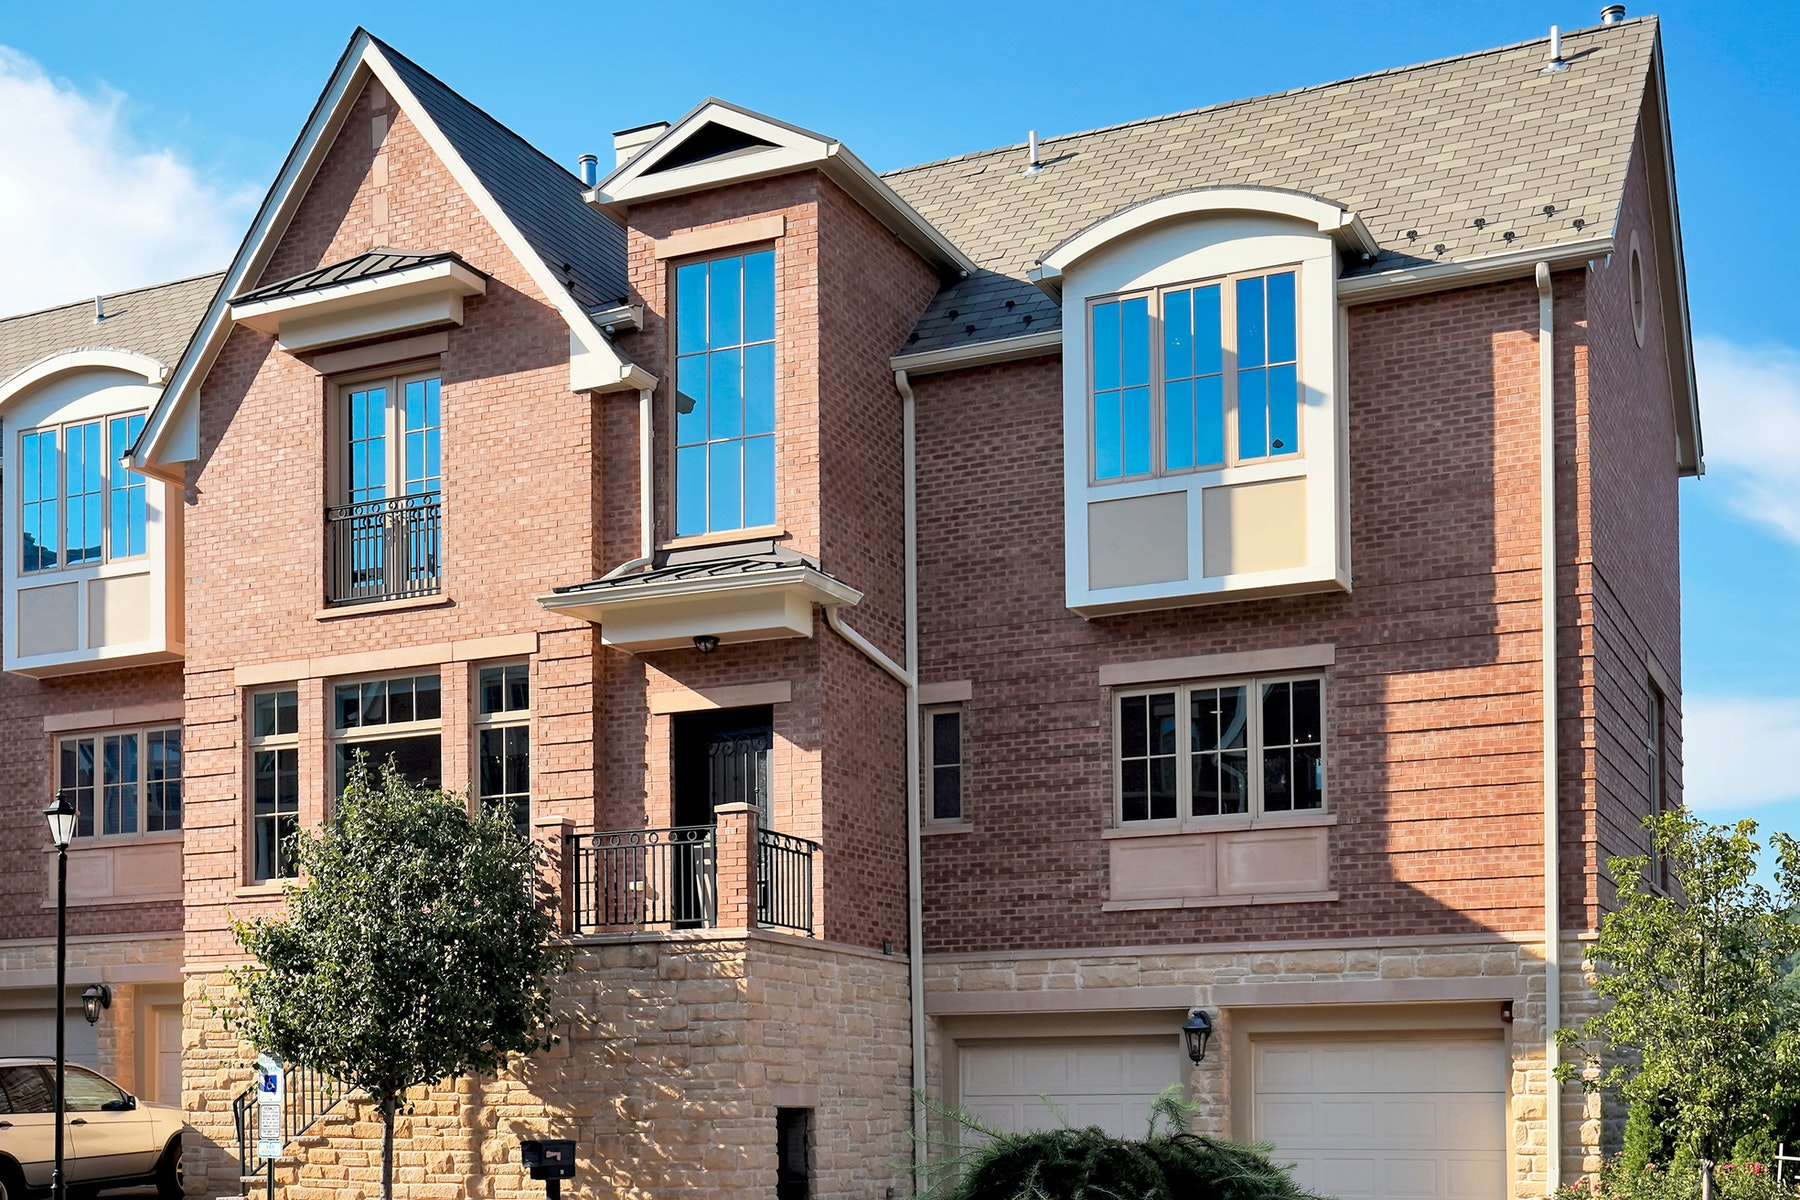 townhouses for Active at The Moorings 18 Moorings Lane Edgewater, New Jersey 07020 United States